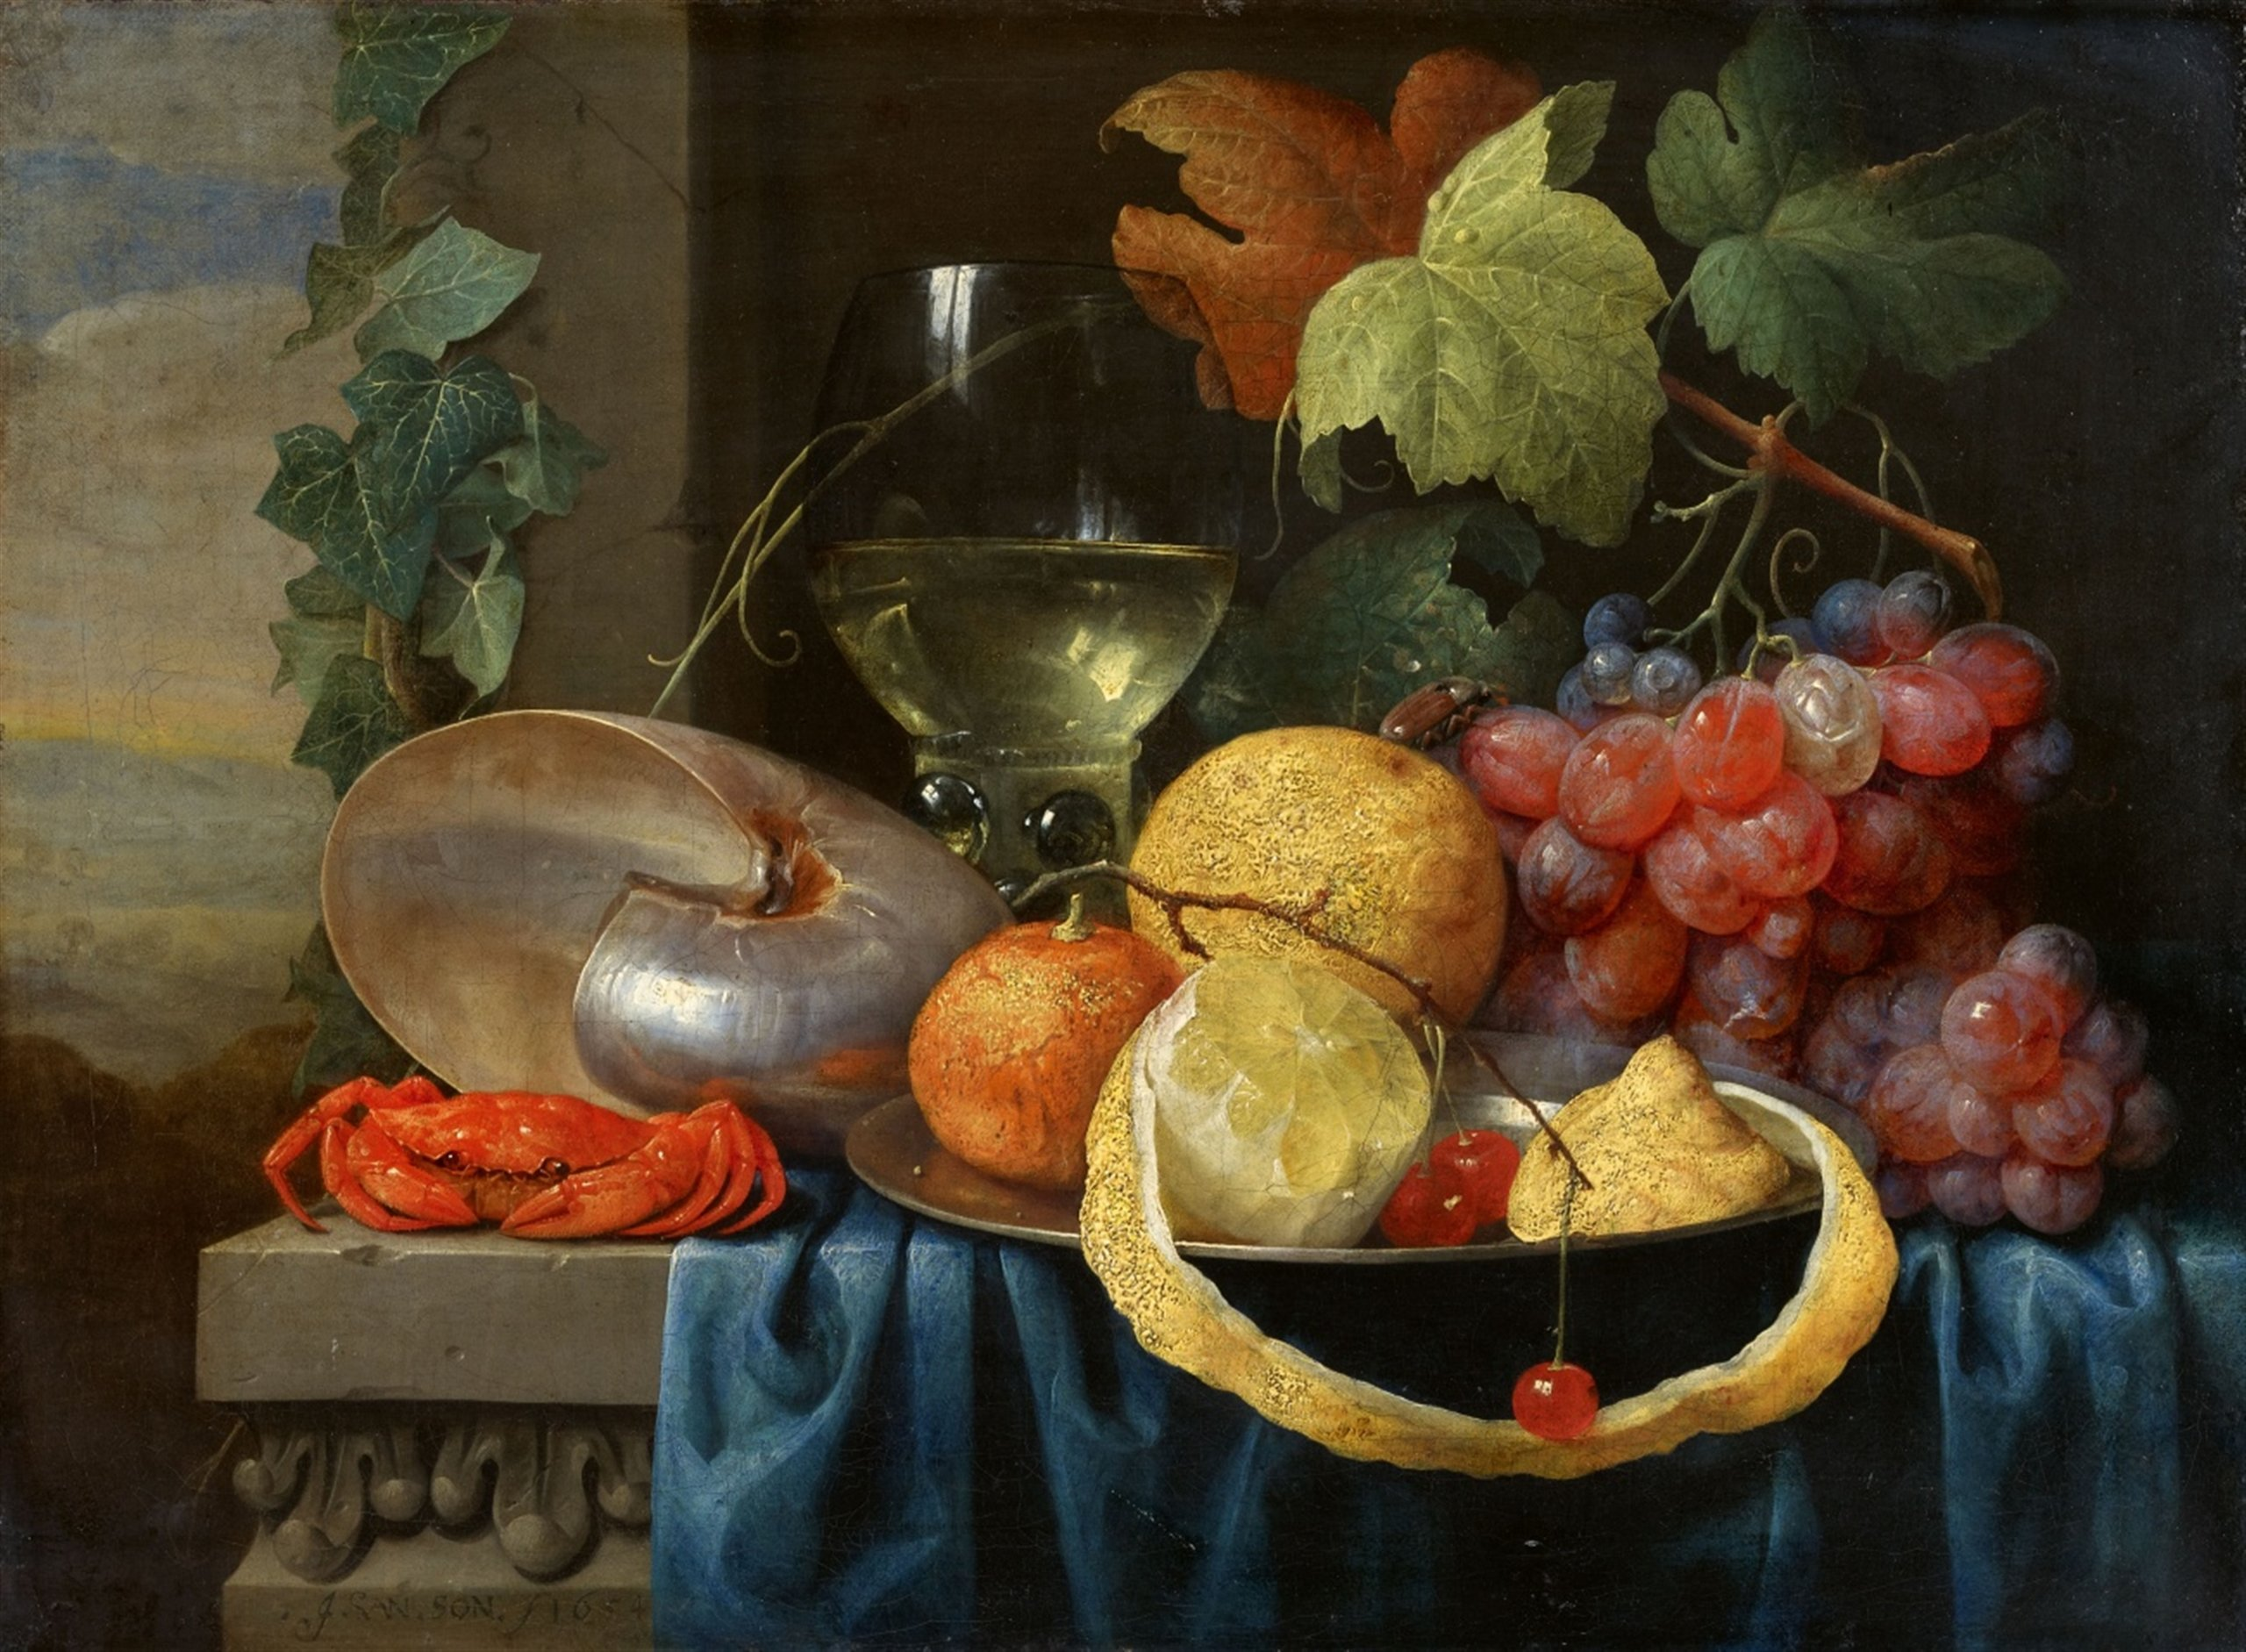 Fruit Still Life with a Nautilus Chalice, by Joris van Son, 1654 - 2560px